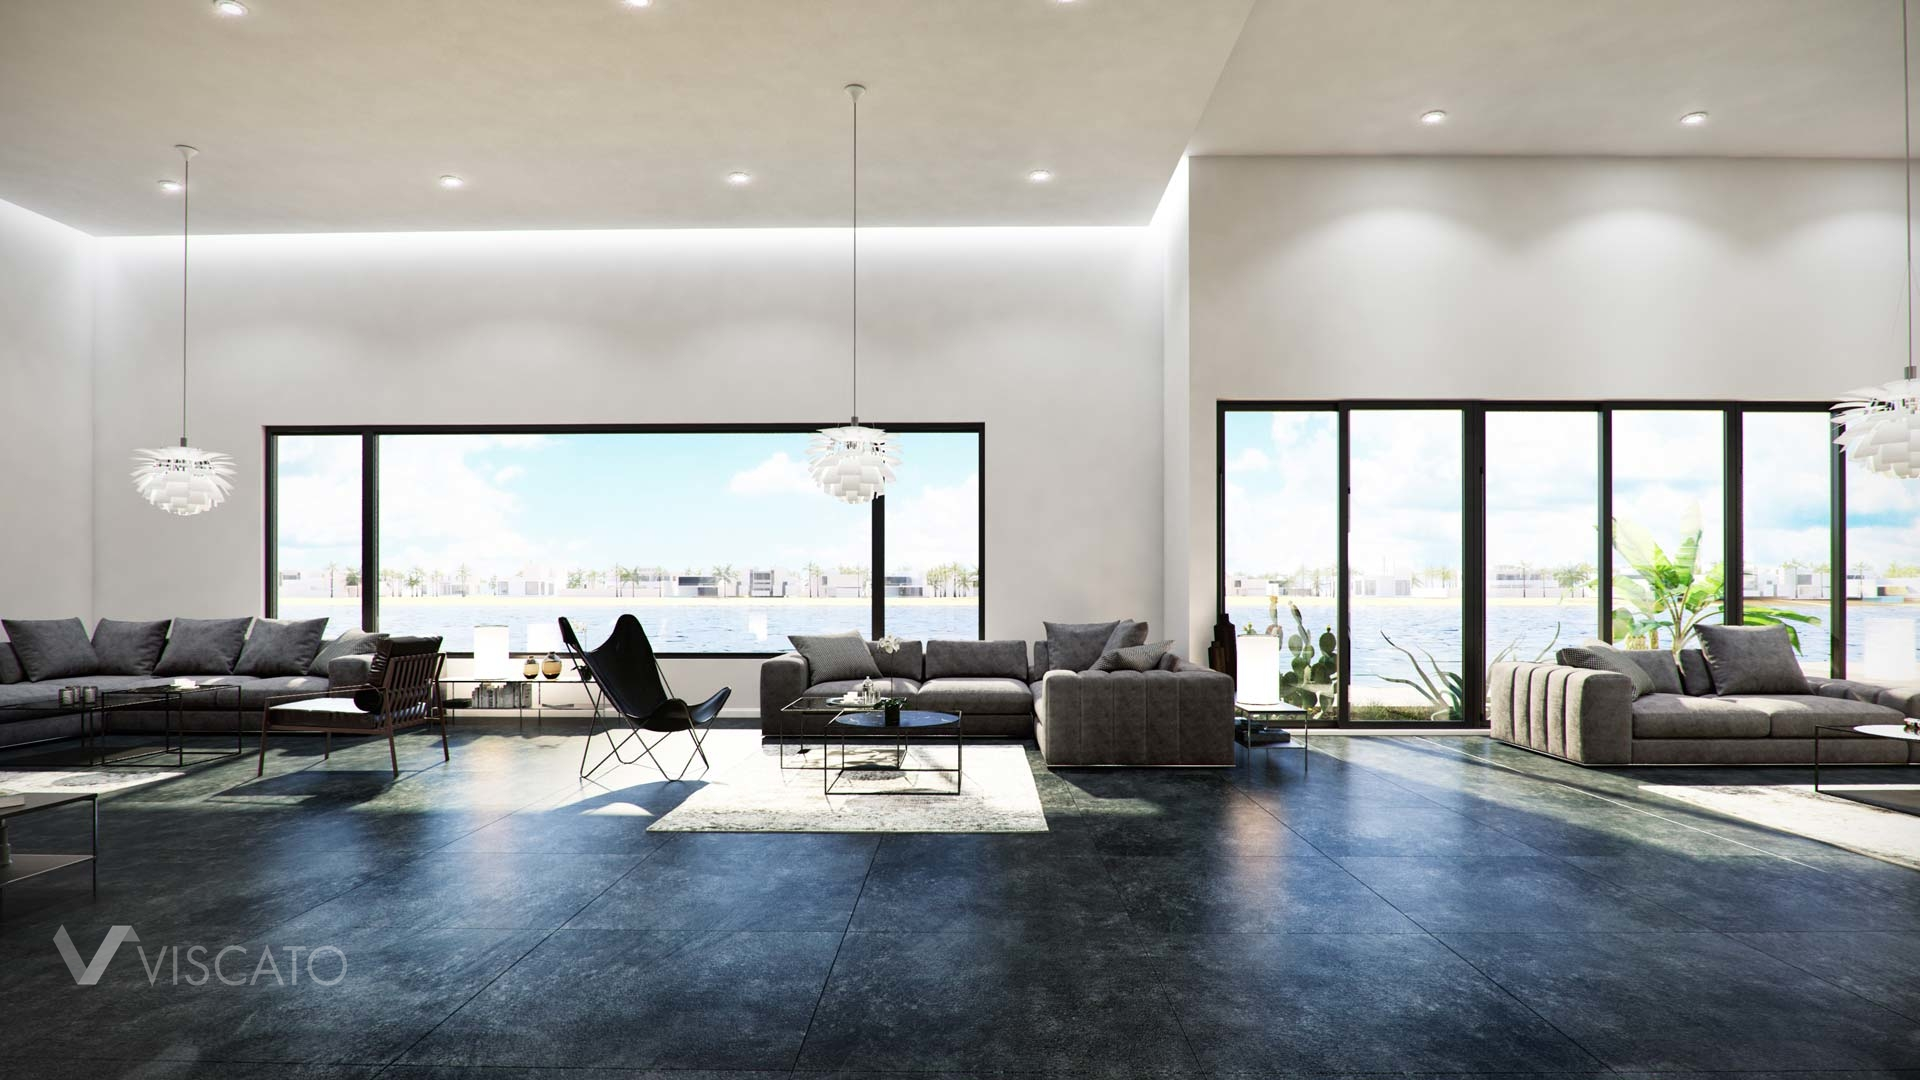 3d interior visualization- a wide view over a reception